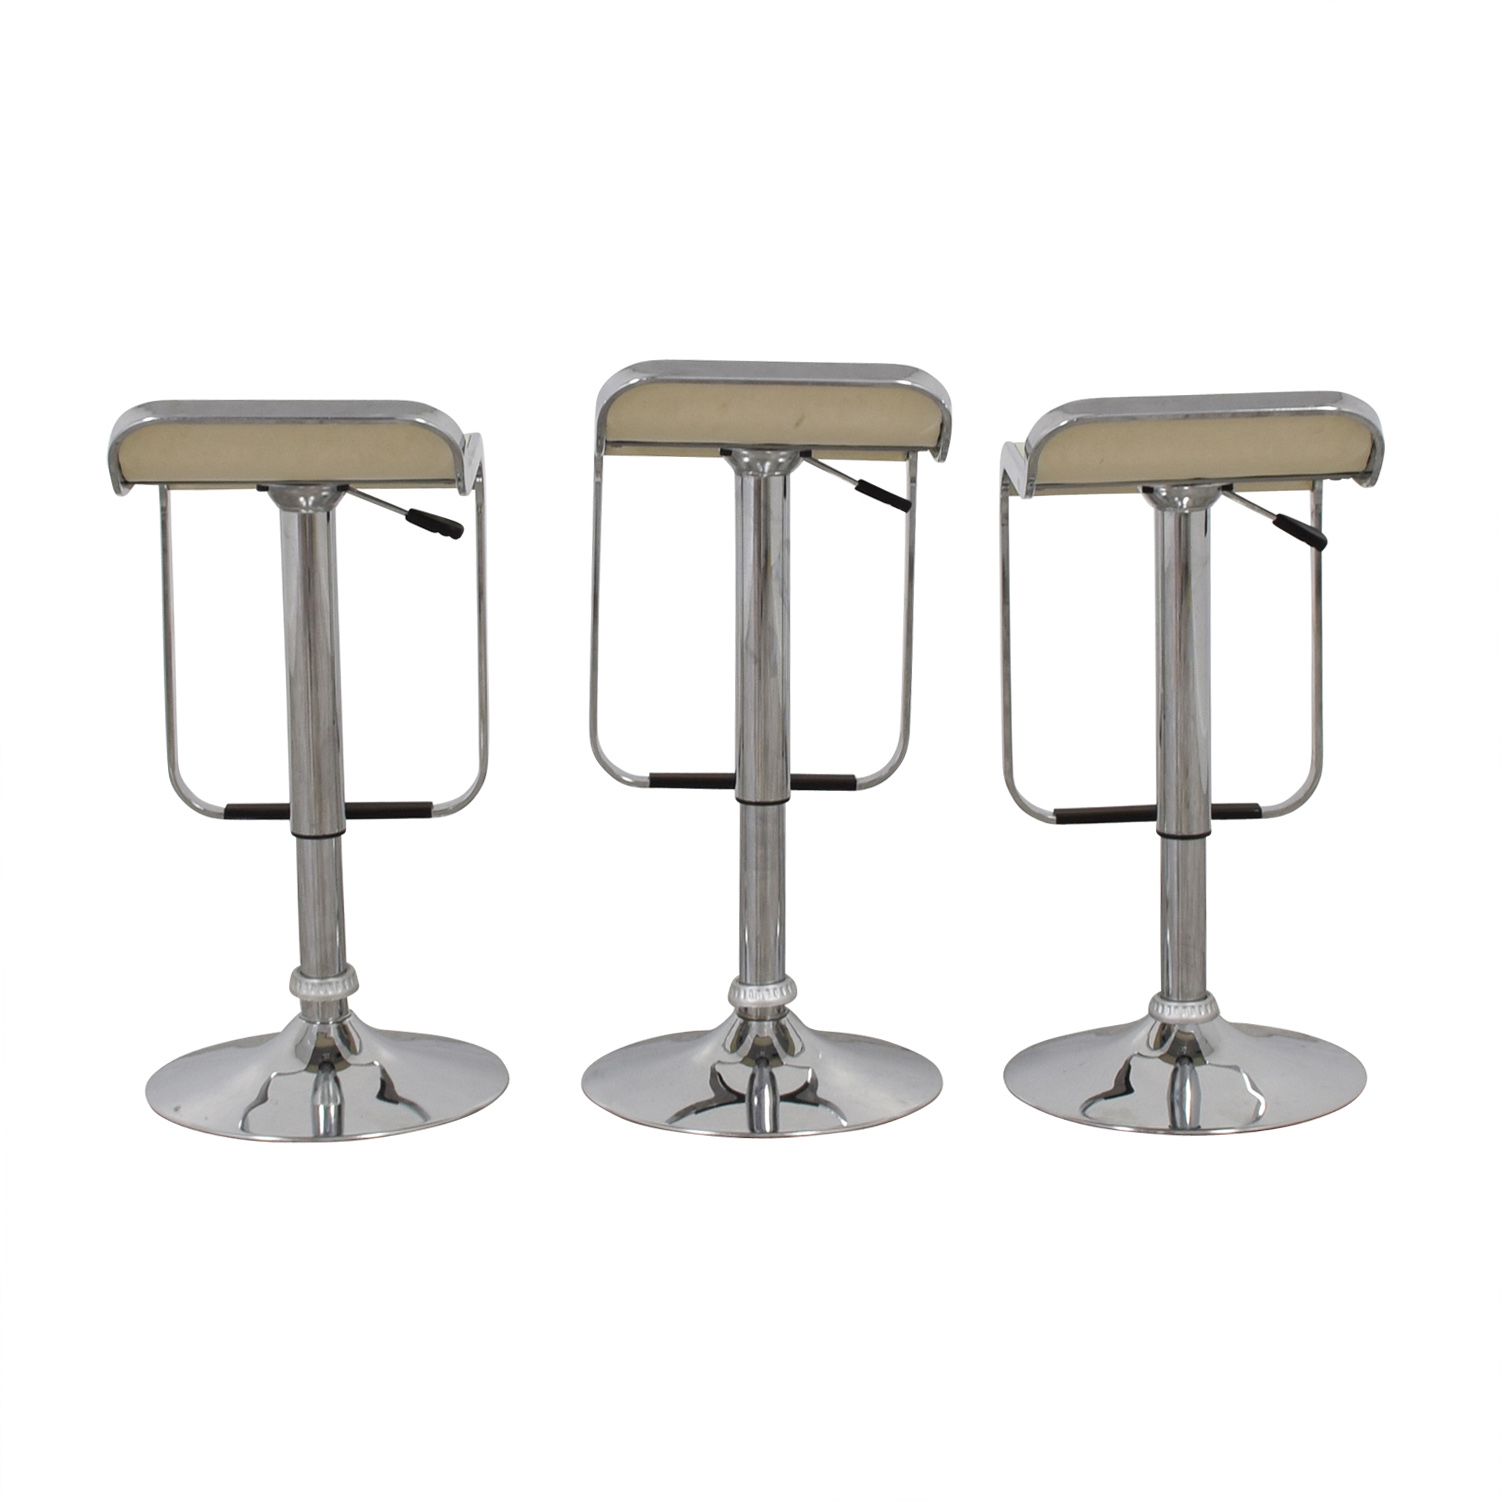 Pottery Barn Pottery Barn White and Chrome Stools dimensions